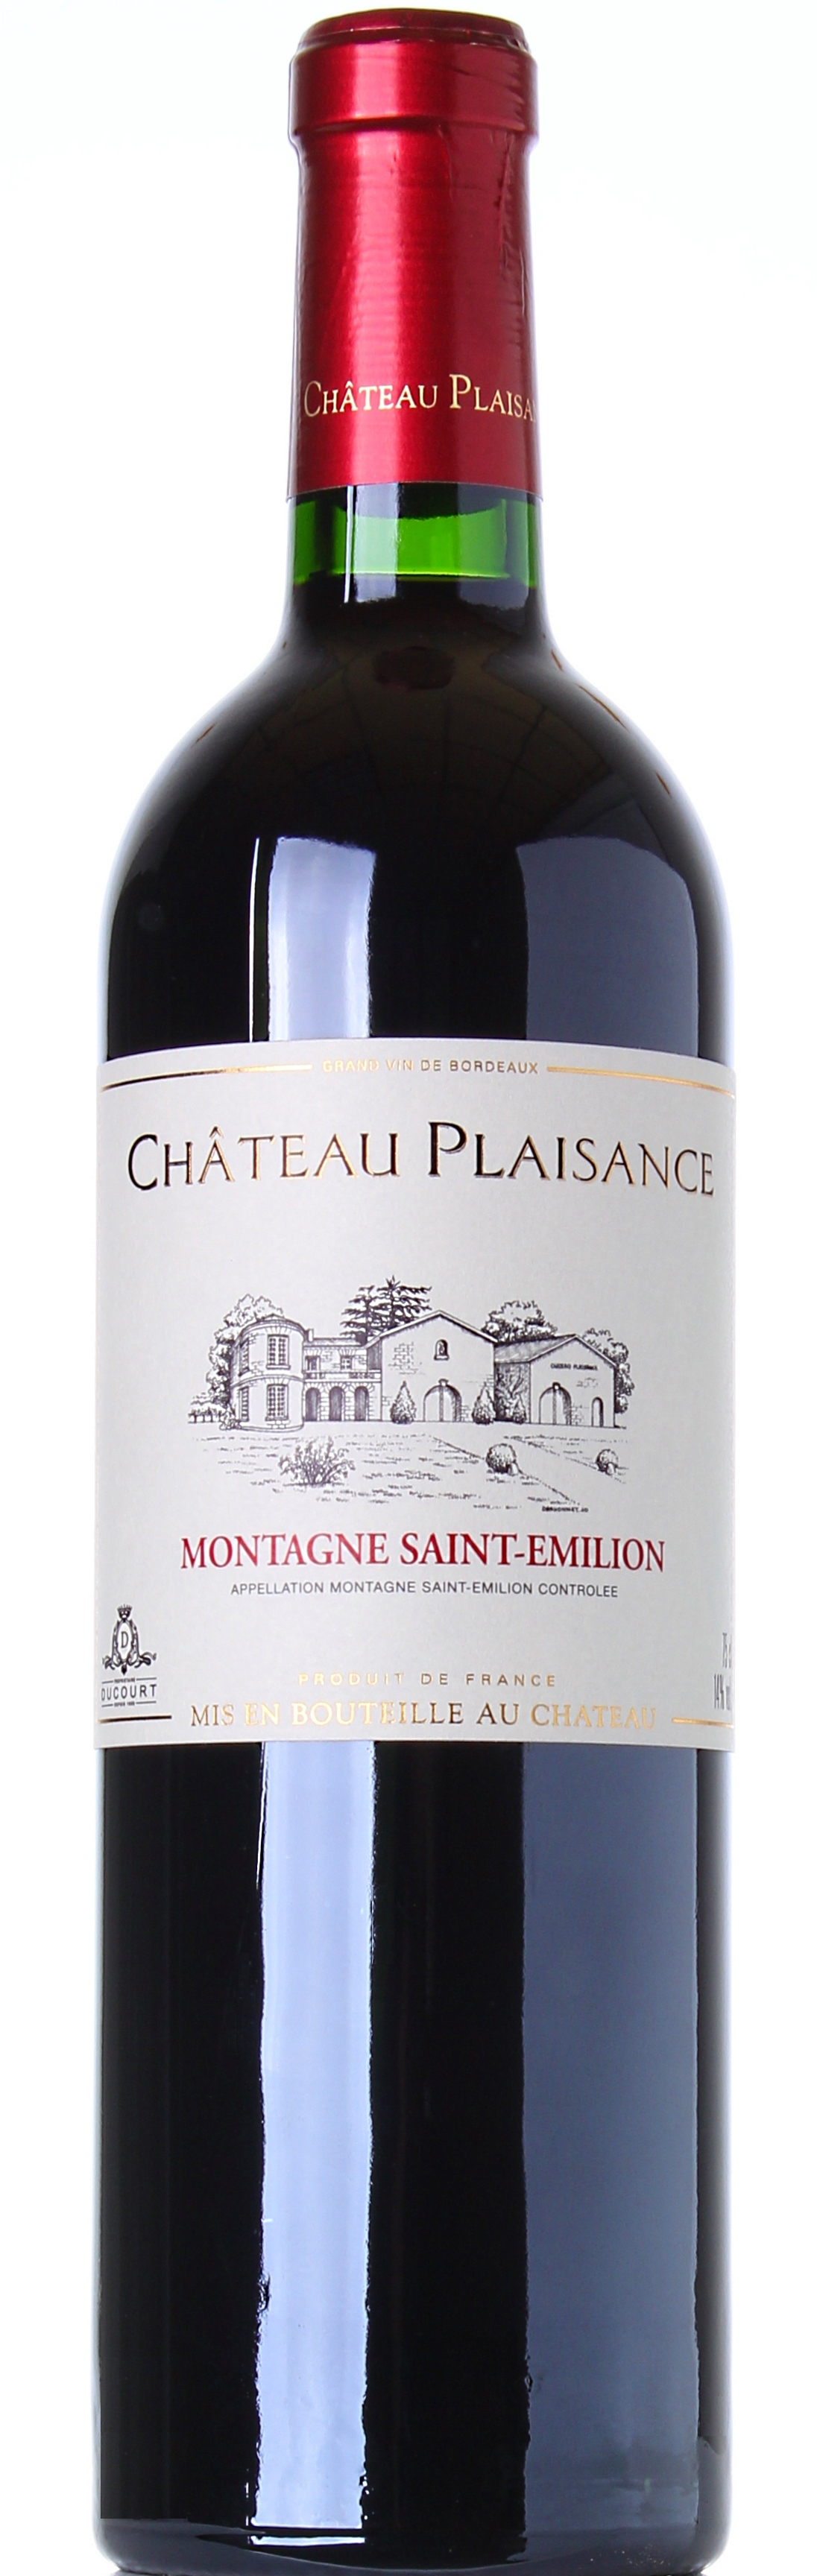 DUCOURT CHATEAU PLAISANCE 2009